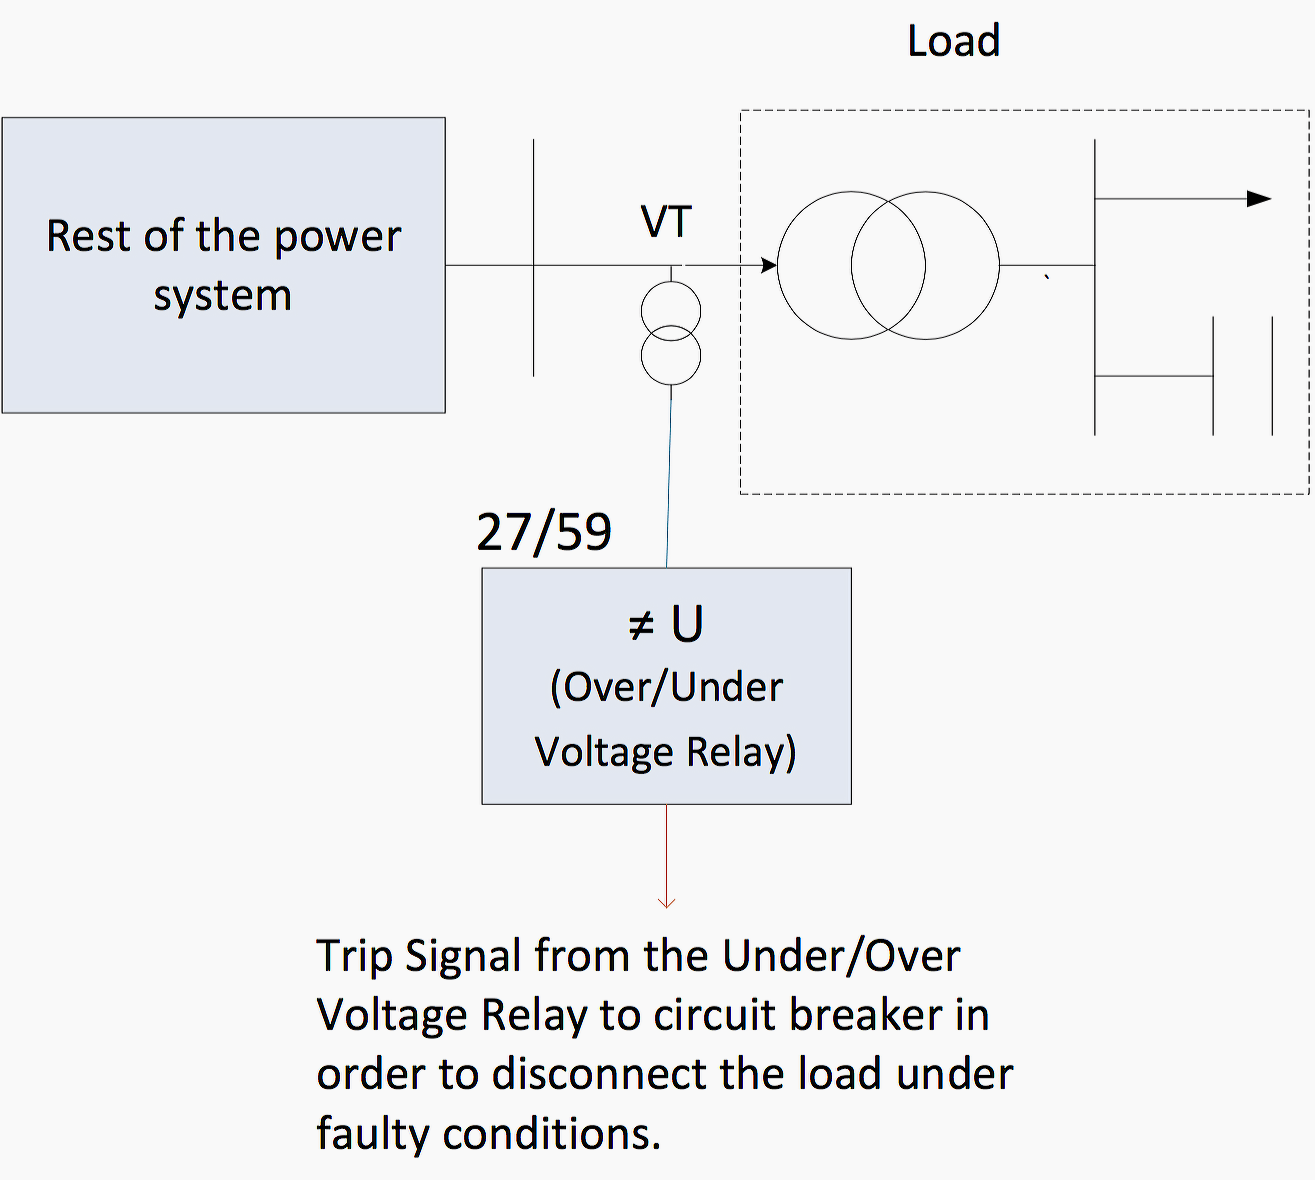 Implementation of an overunder voltage relay for load protection implementation of an overunder voltage relay for load protection swarovskicordoba